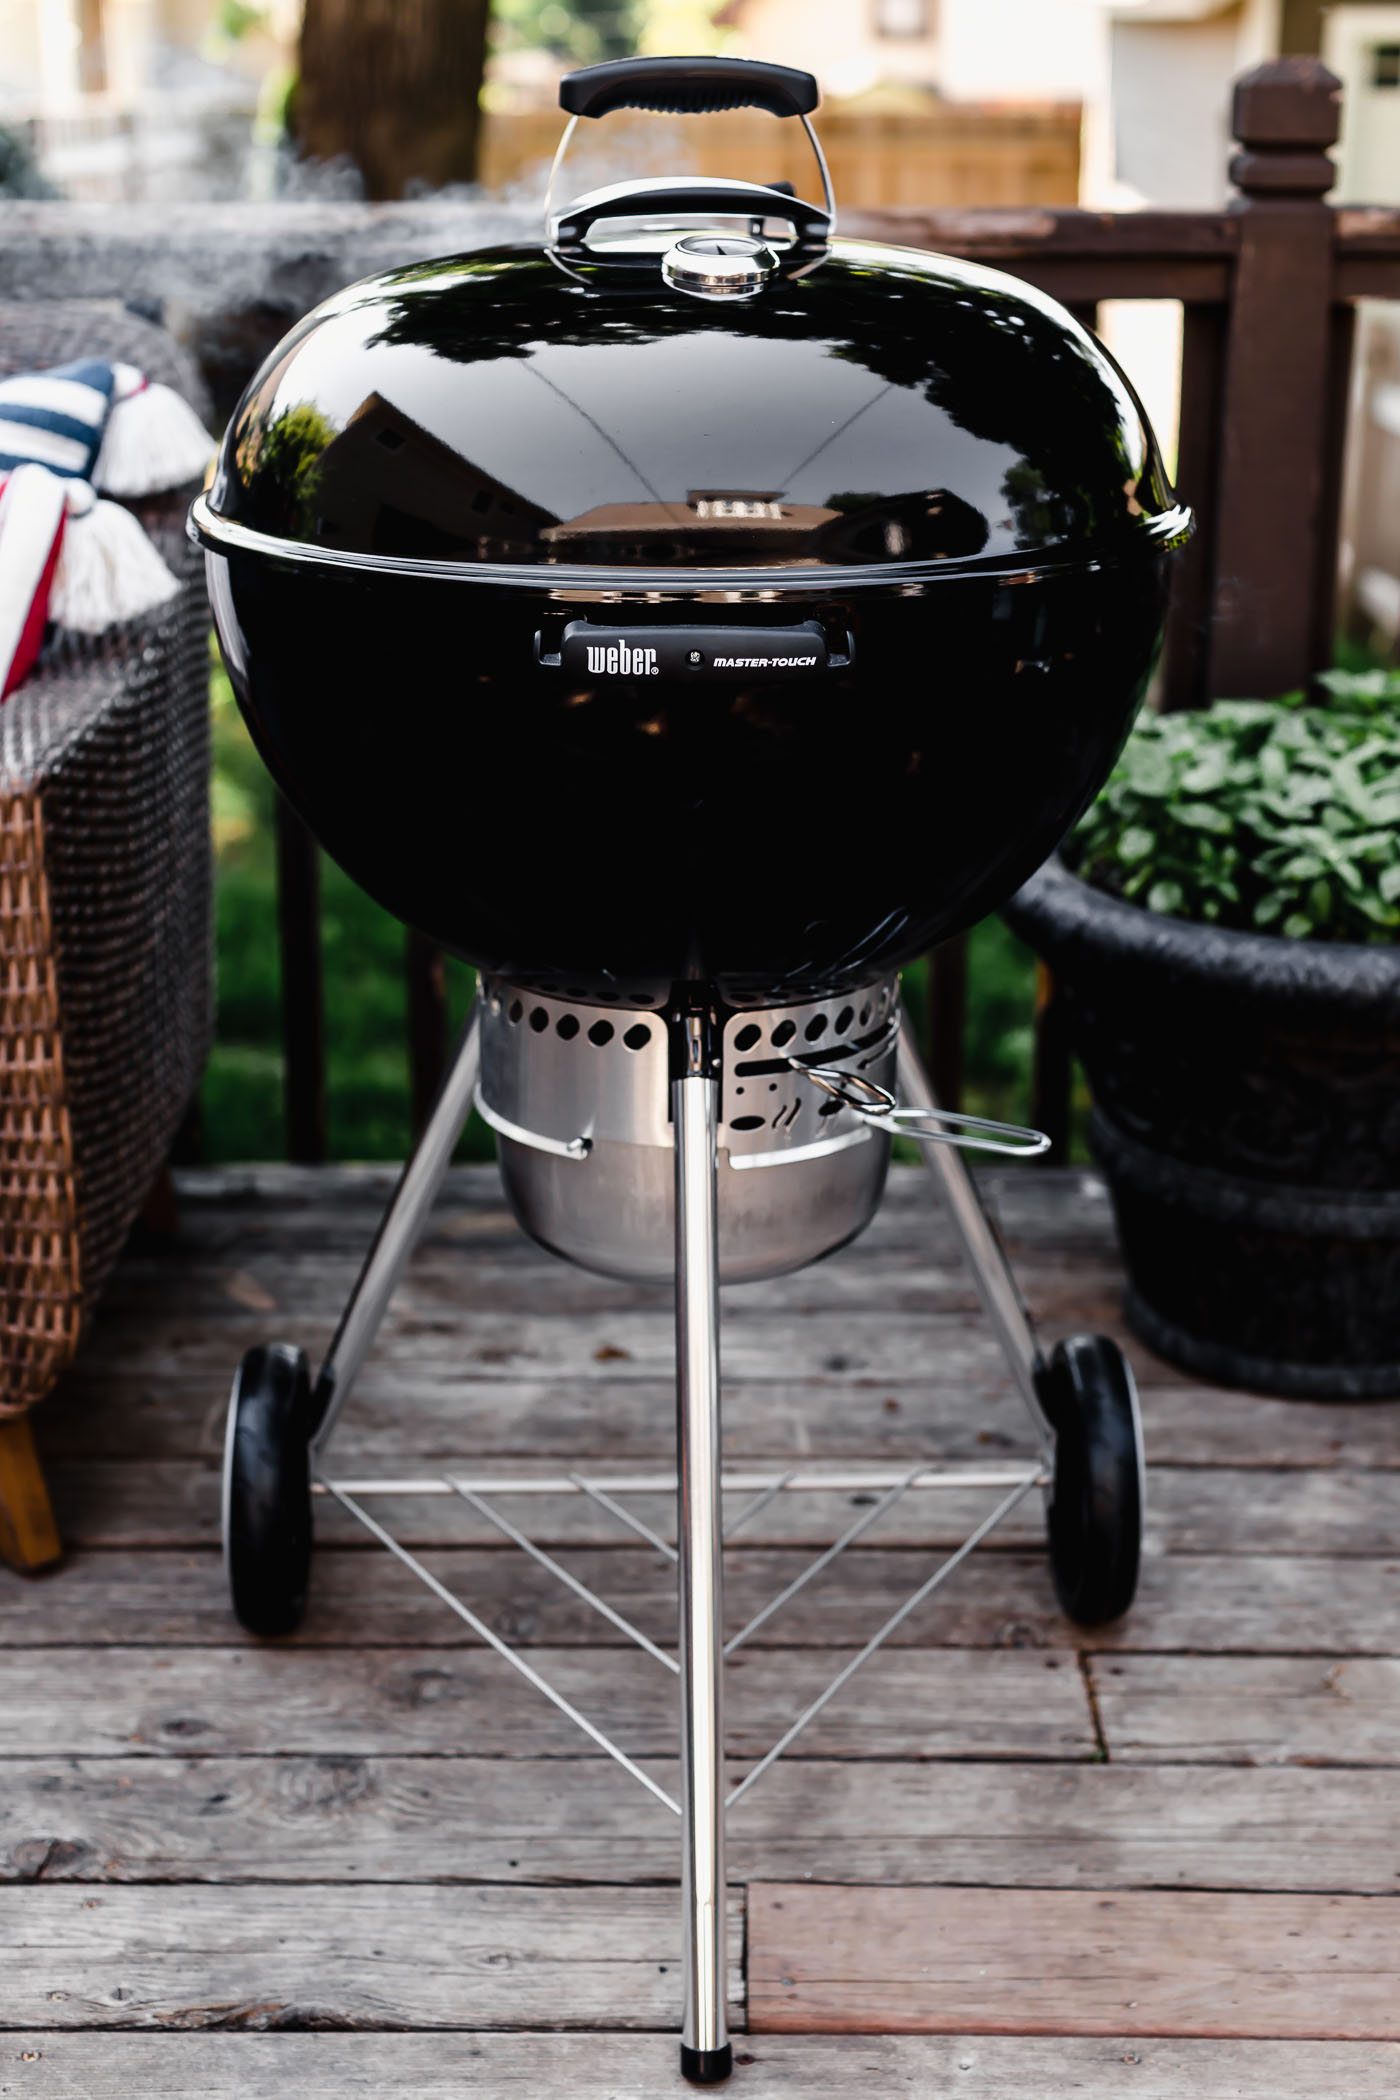 the 22-inch original weber grill preheating to make the perfect grilled steak!